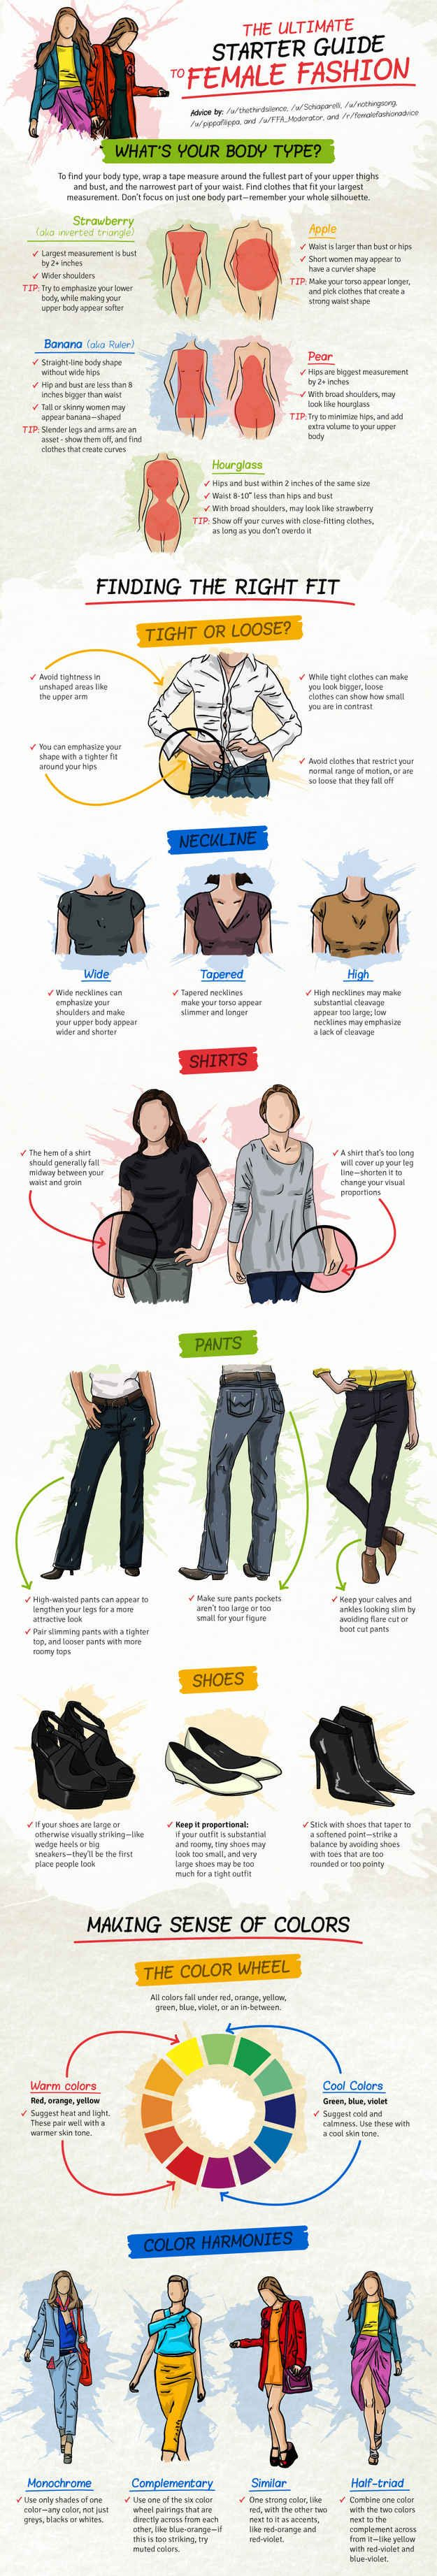 Guide-to-Women-Fashion A complete Guide to Women's Fashion in 1 picture